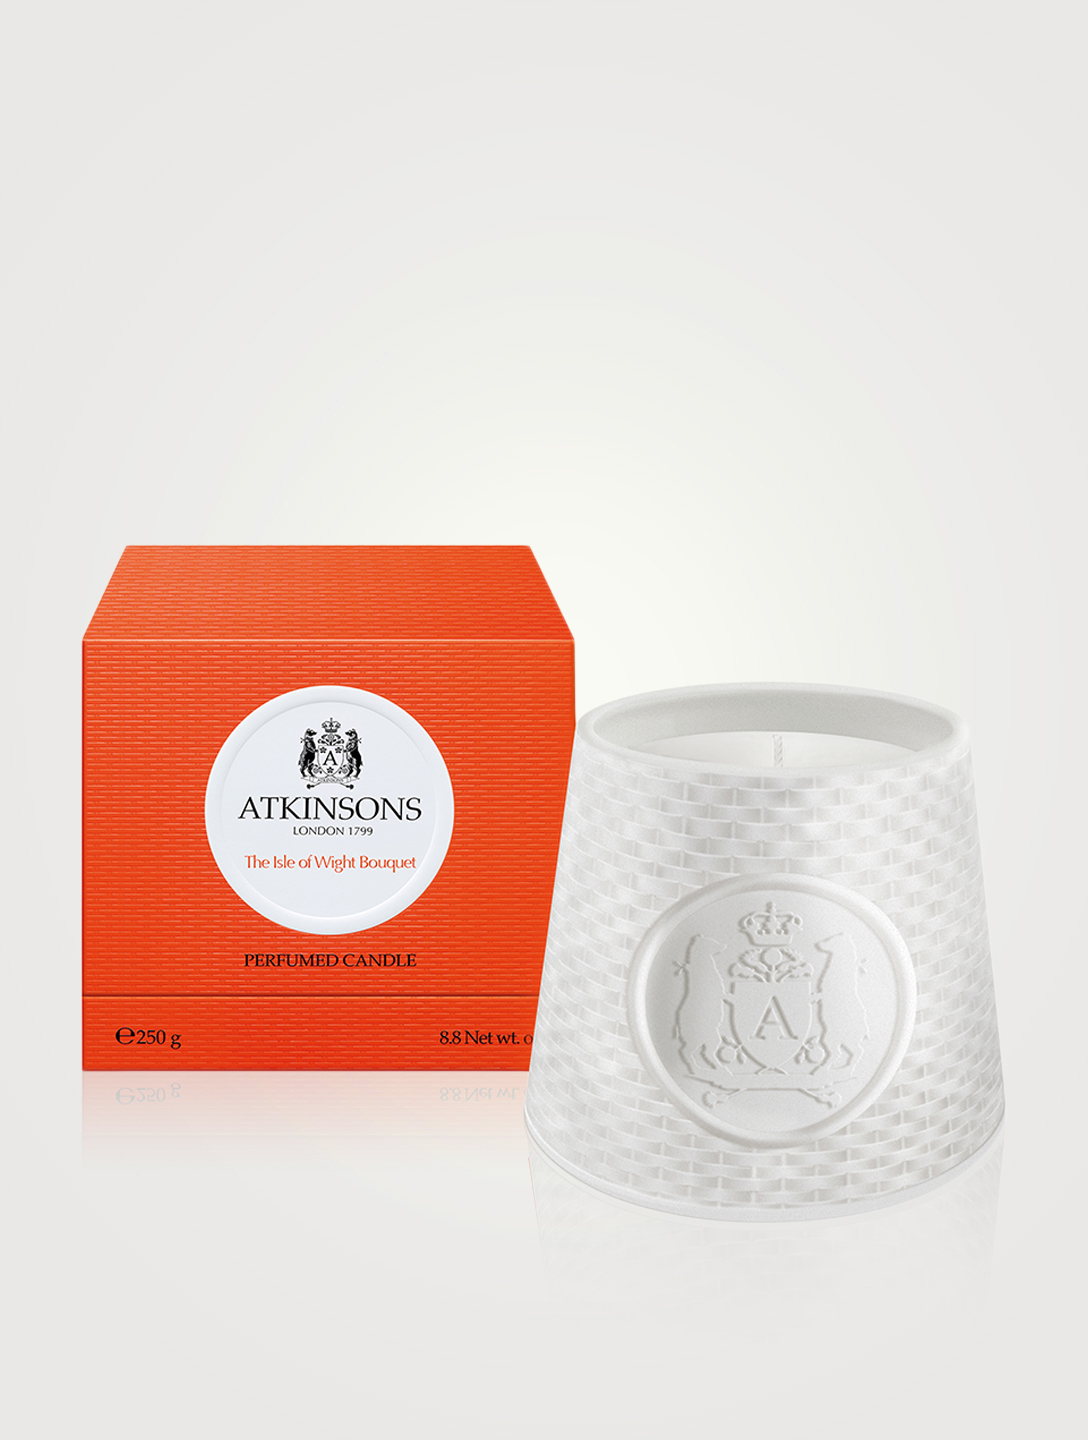 ATKINSONS Isle W. Bouquet Candle Beauty